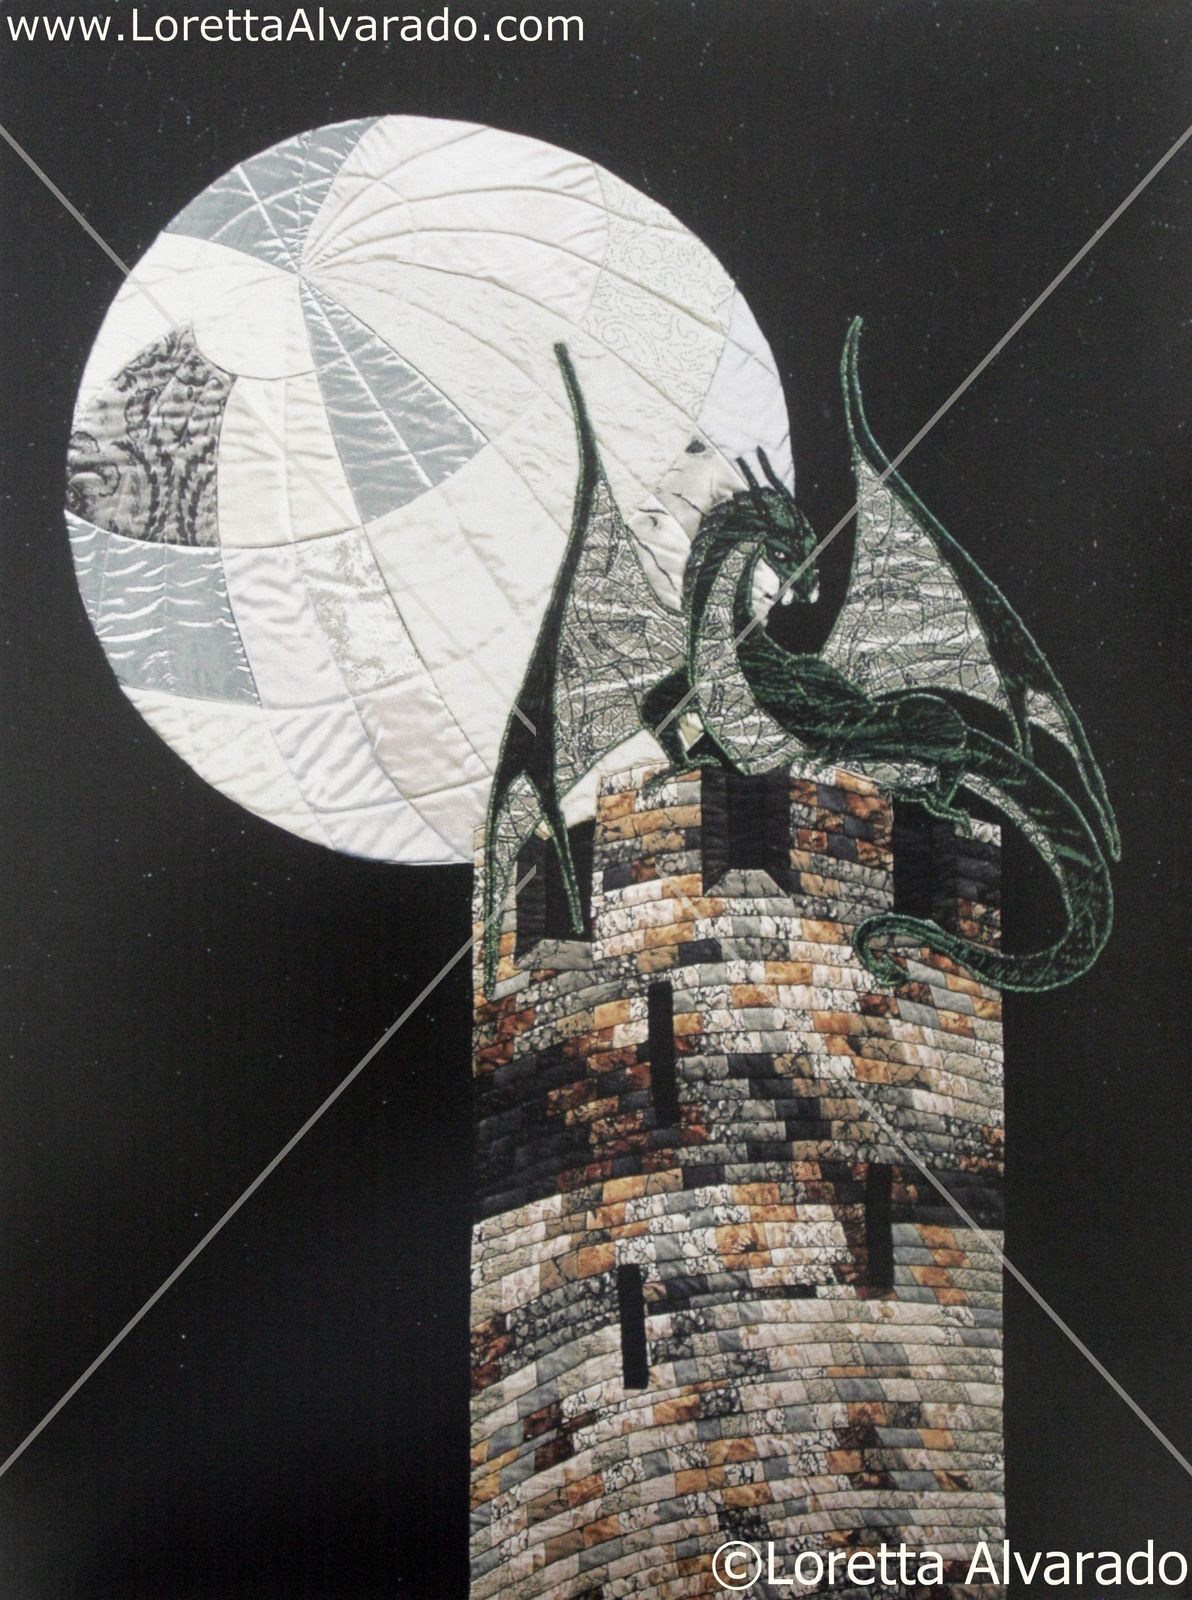 Set of 2 Dragon art posters by fiber artist Loretta Alvarado